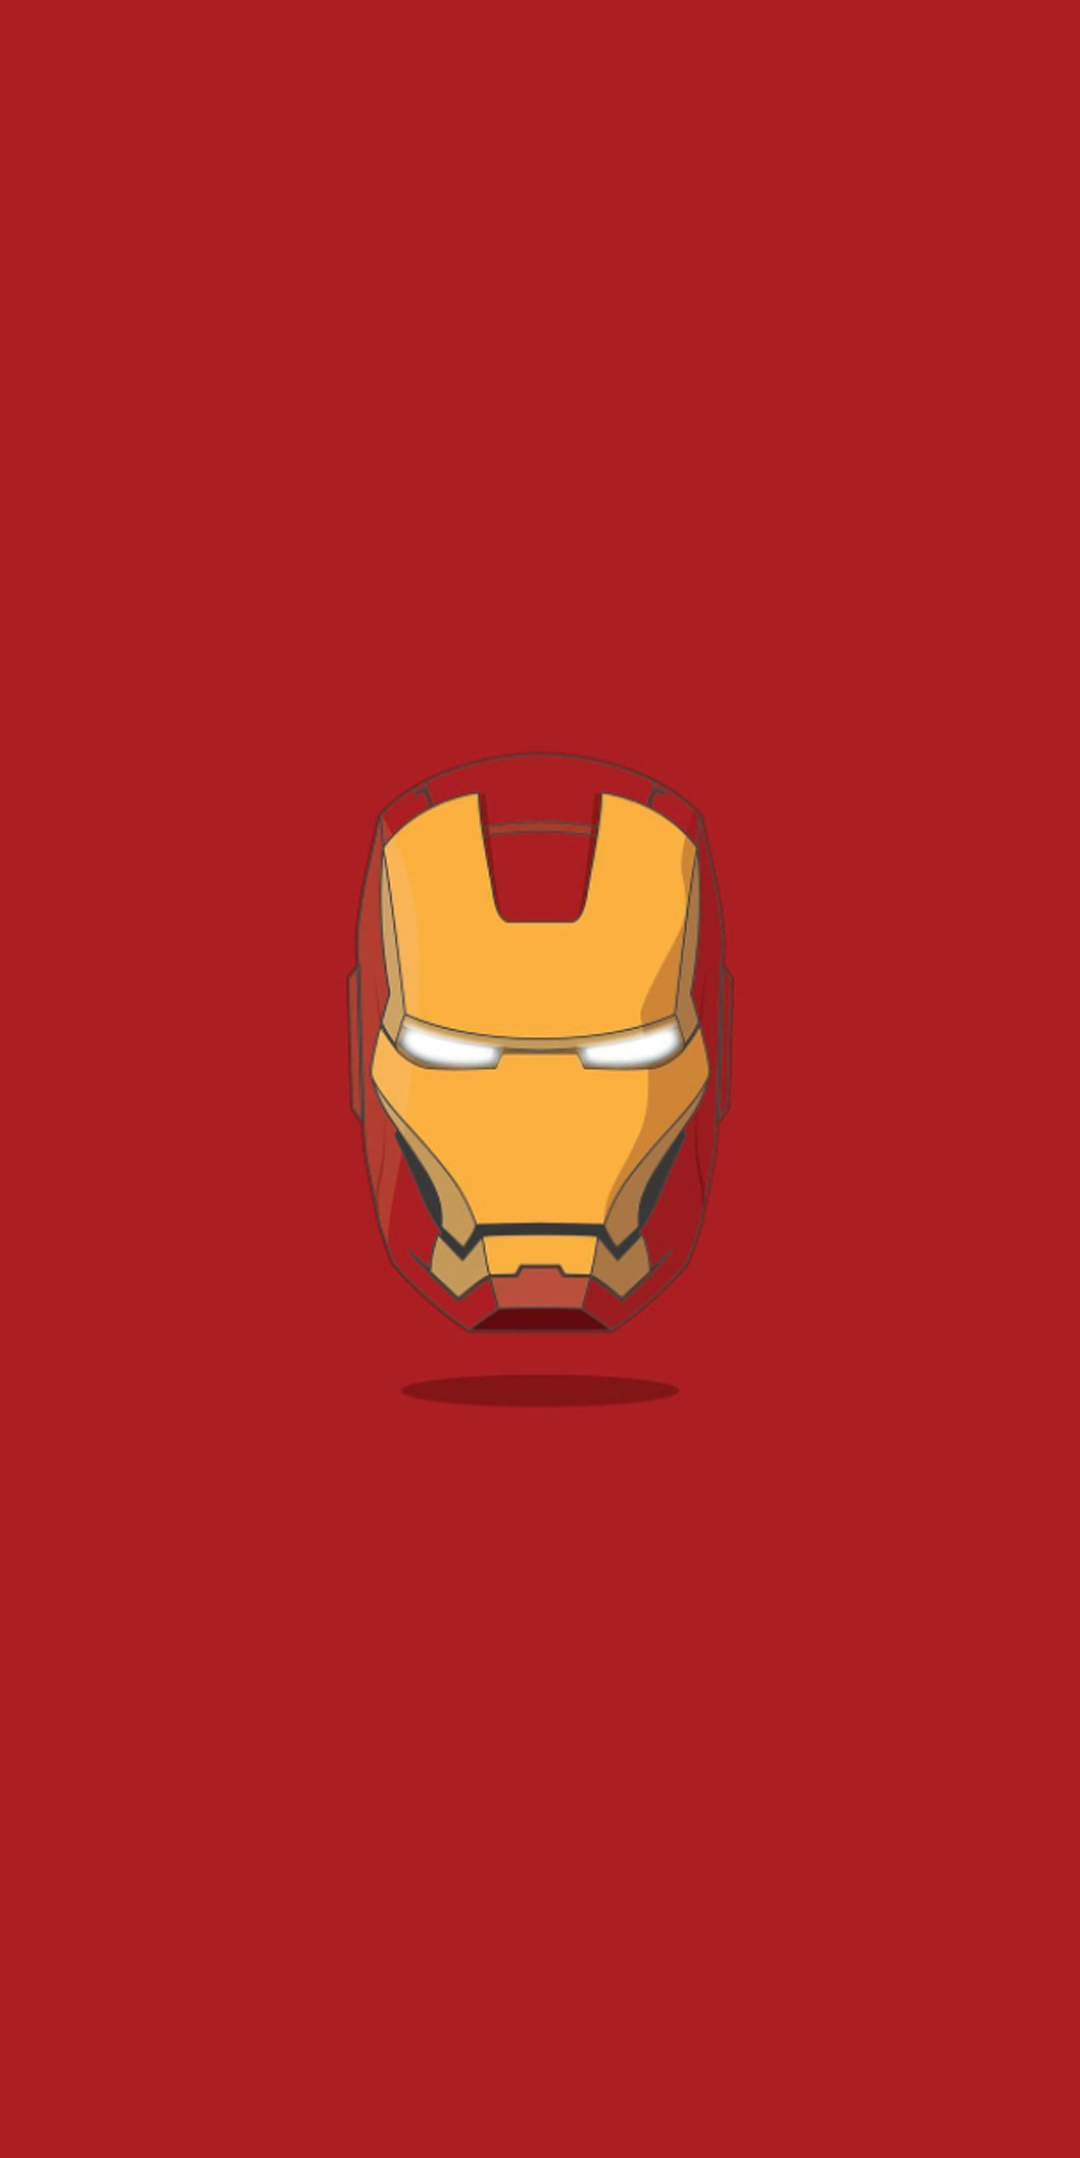 Iron Man Face Armour iPhone Wallpaper